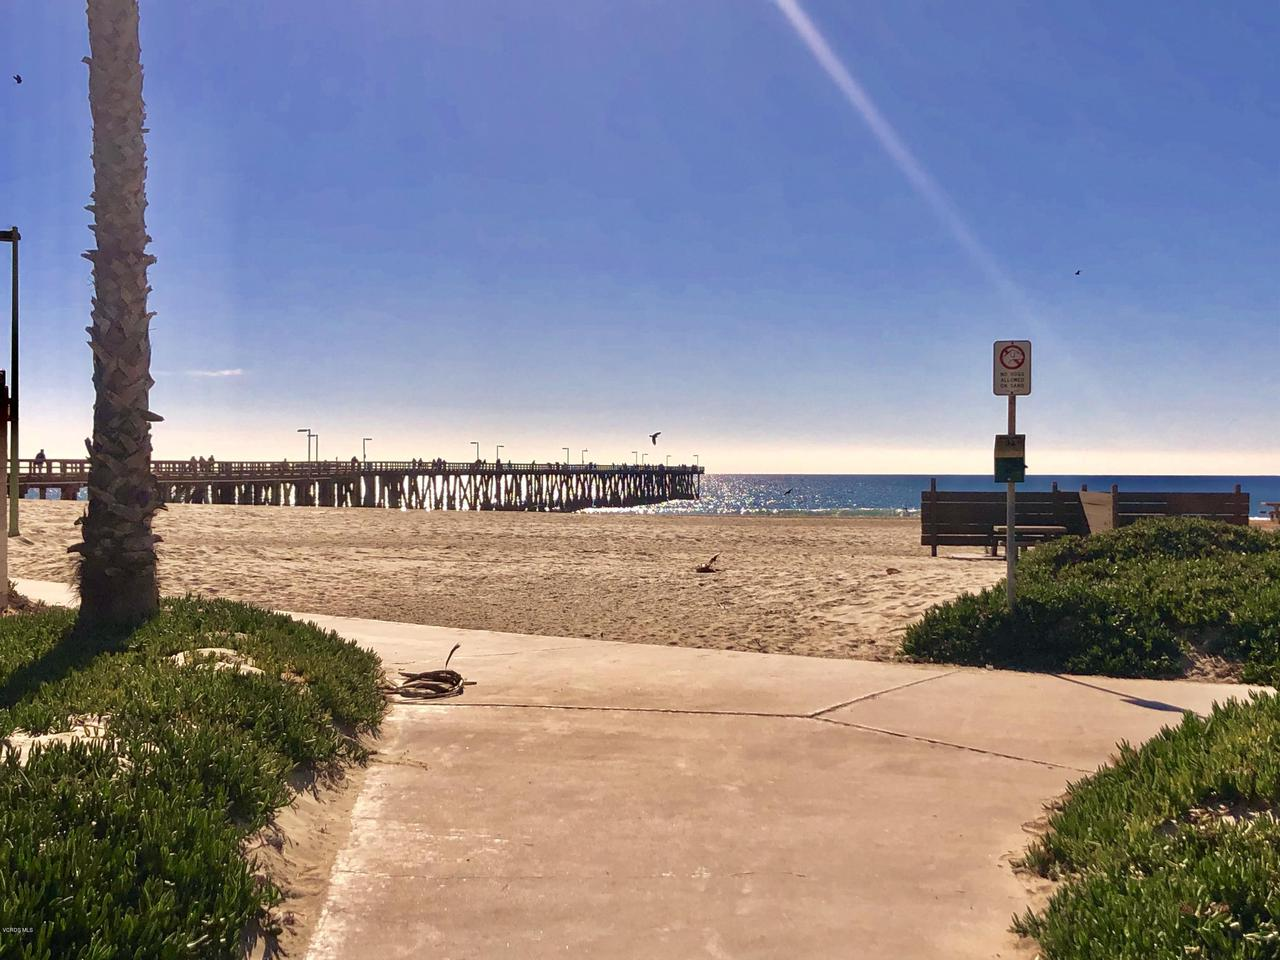 707 ISLAND VIEW, Port Hueneme, CA 93041 - PORT HUENEME BEACH